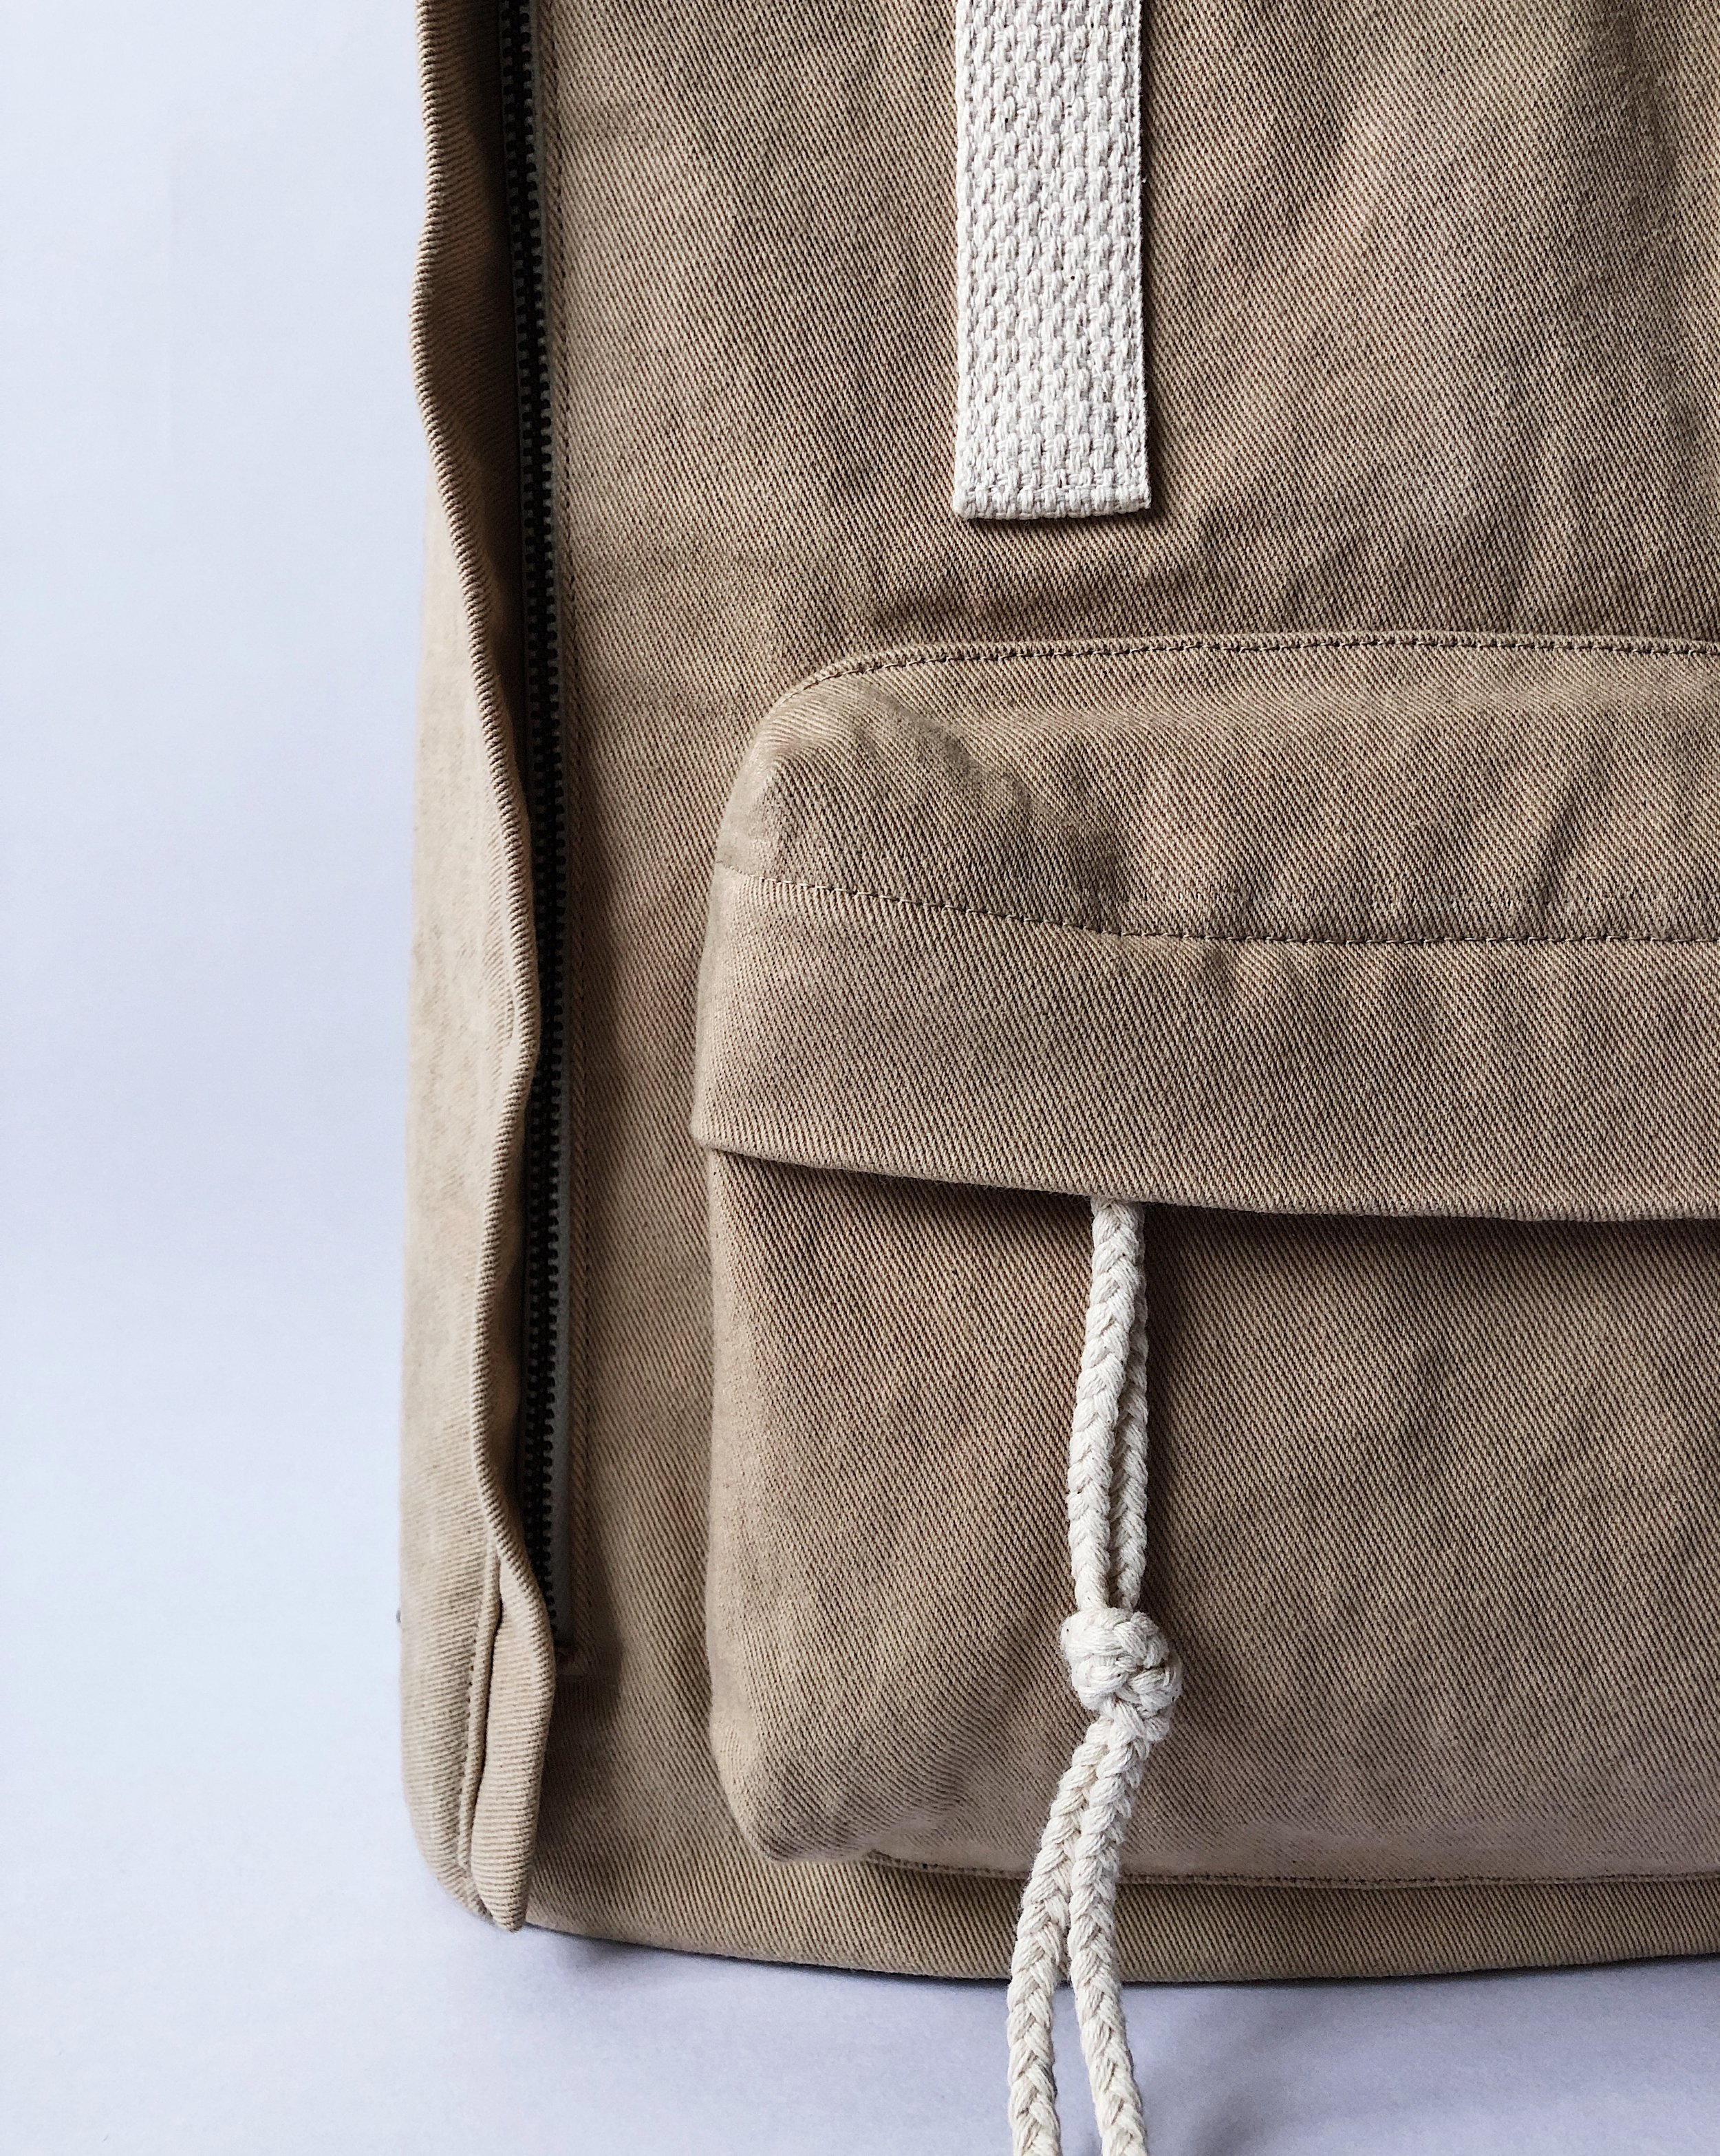 Raspberry Rucksack - Endearing Everyday Blog making her own backpack